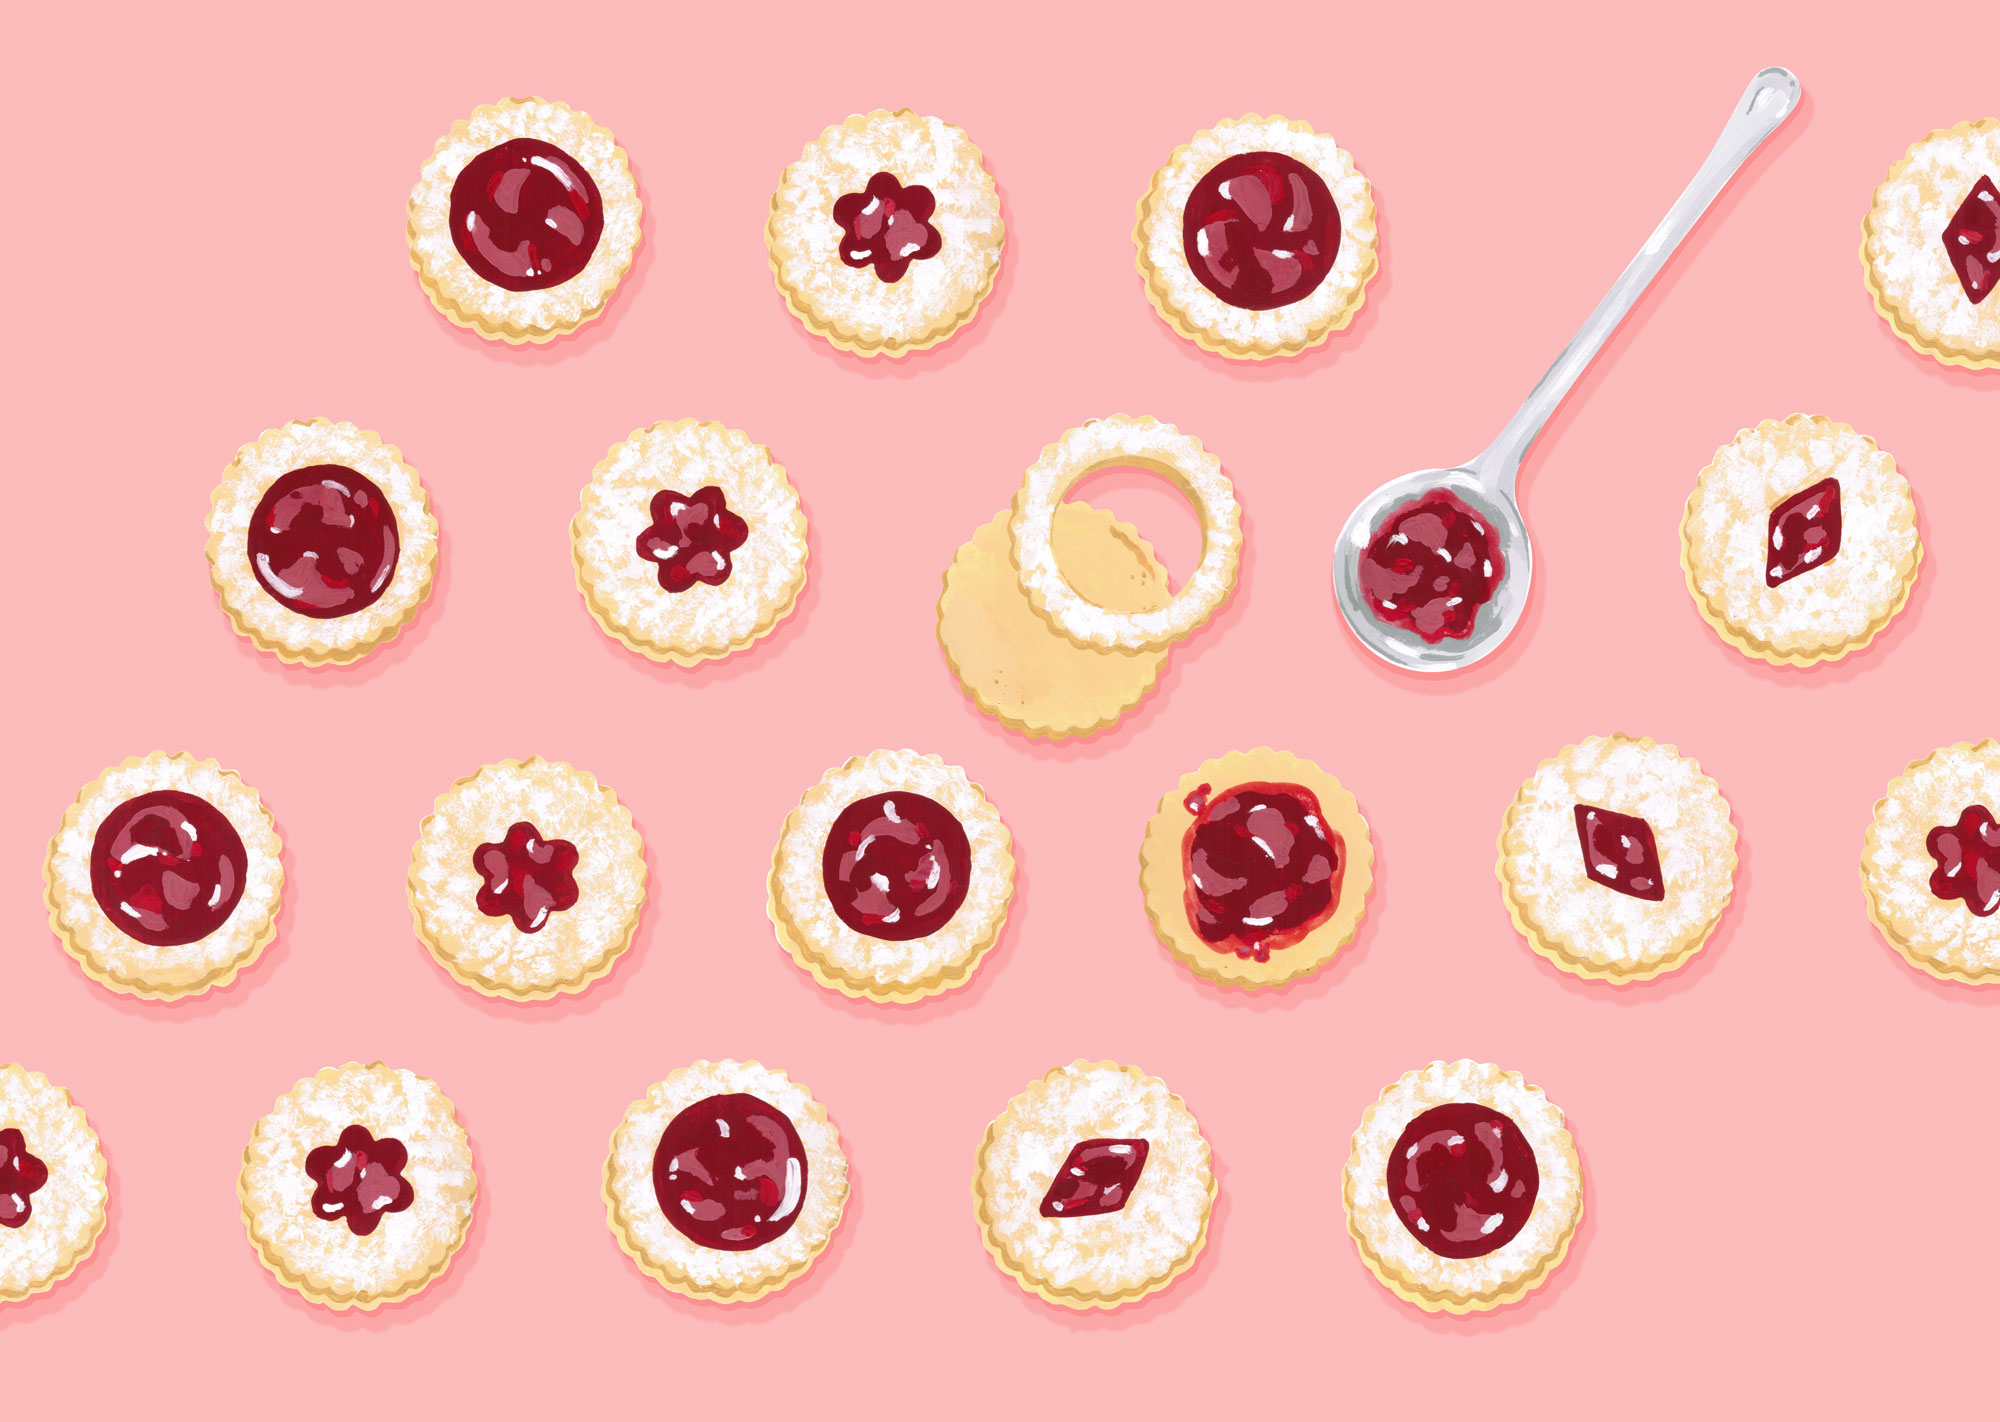 Andrea Gonzalez illustration J is for Jam-filled cookies